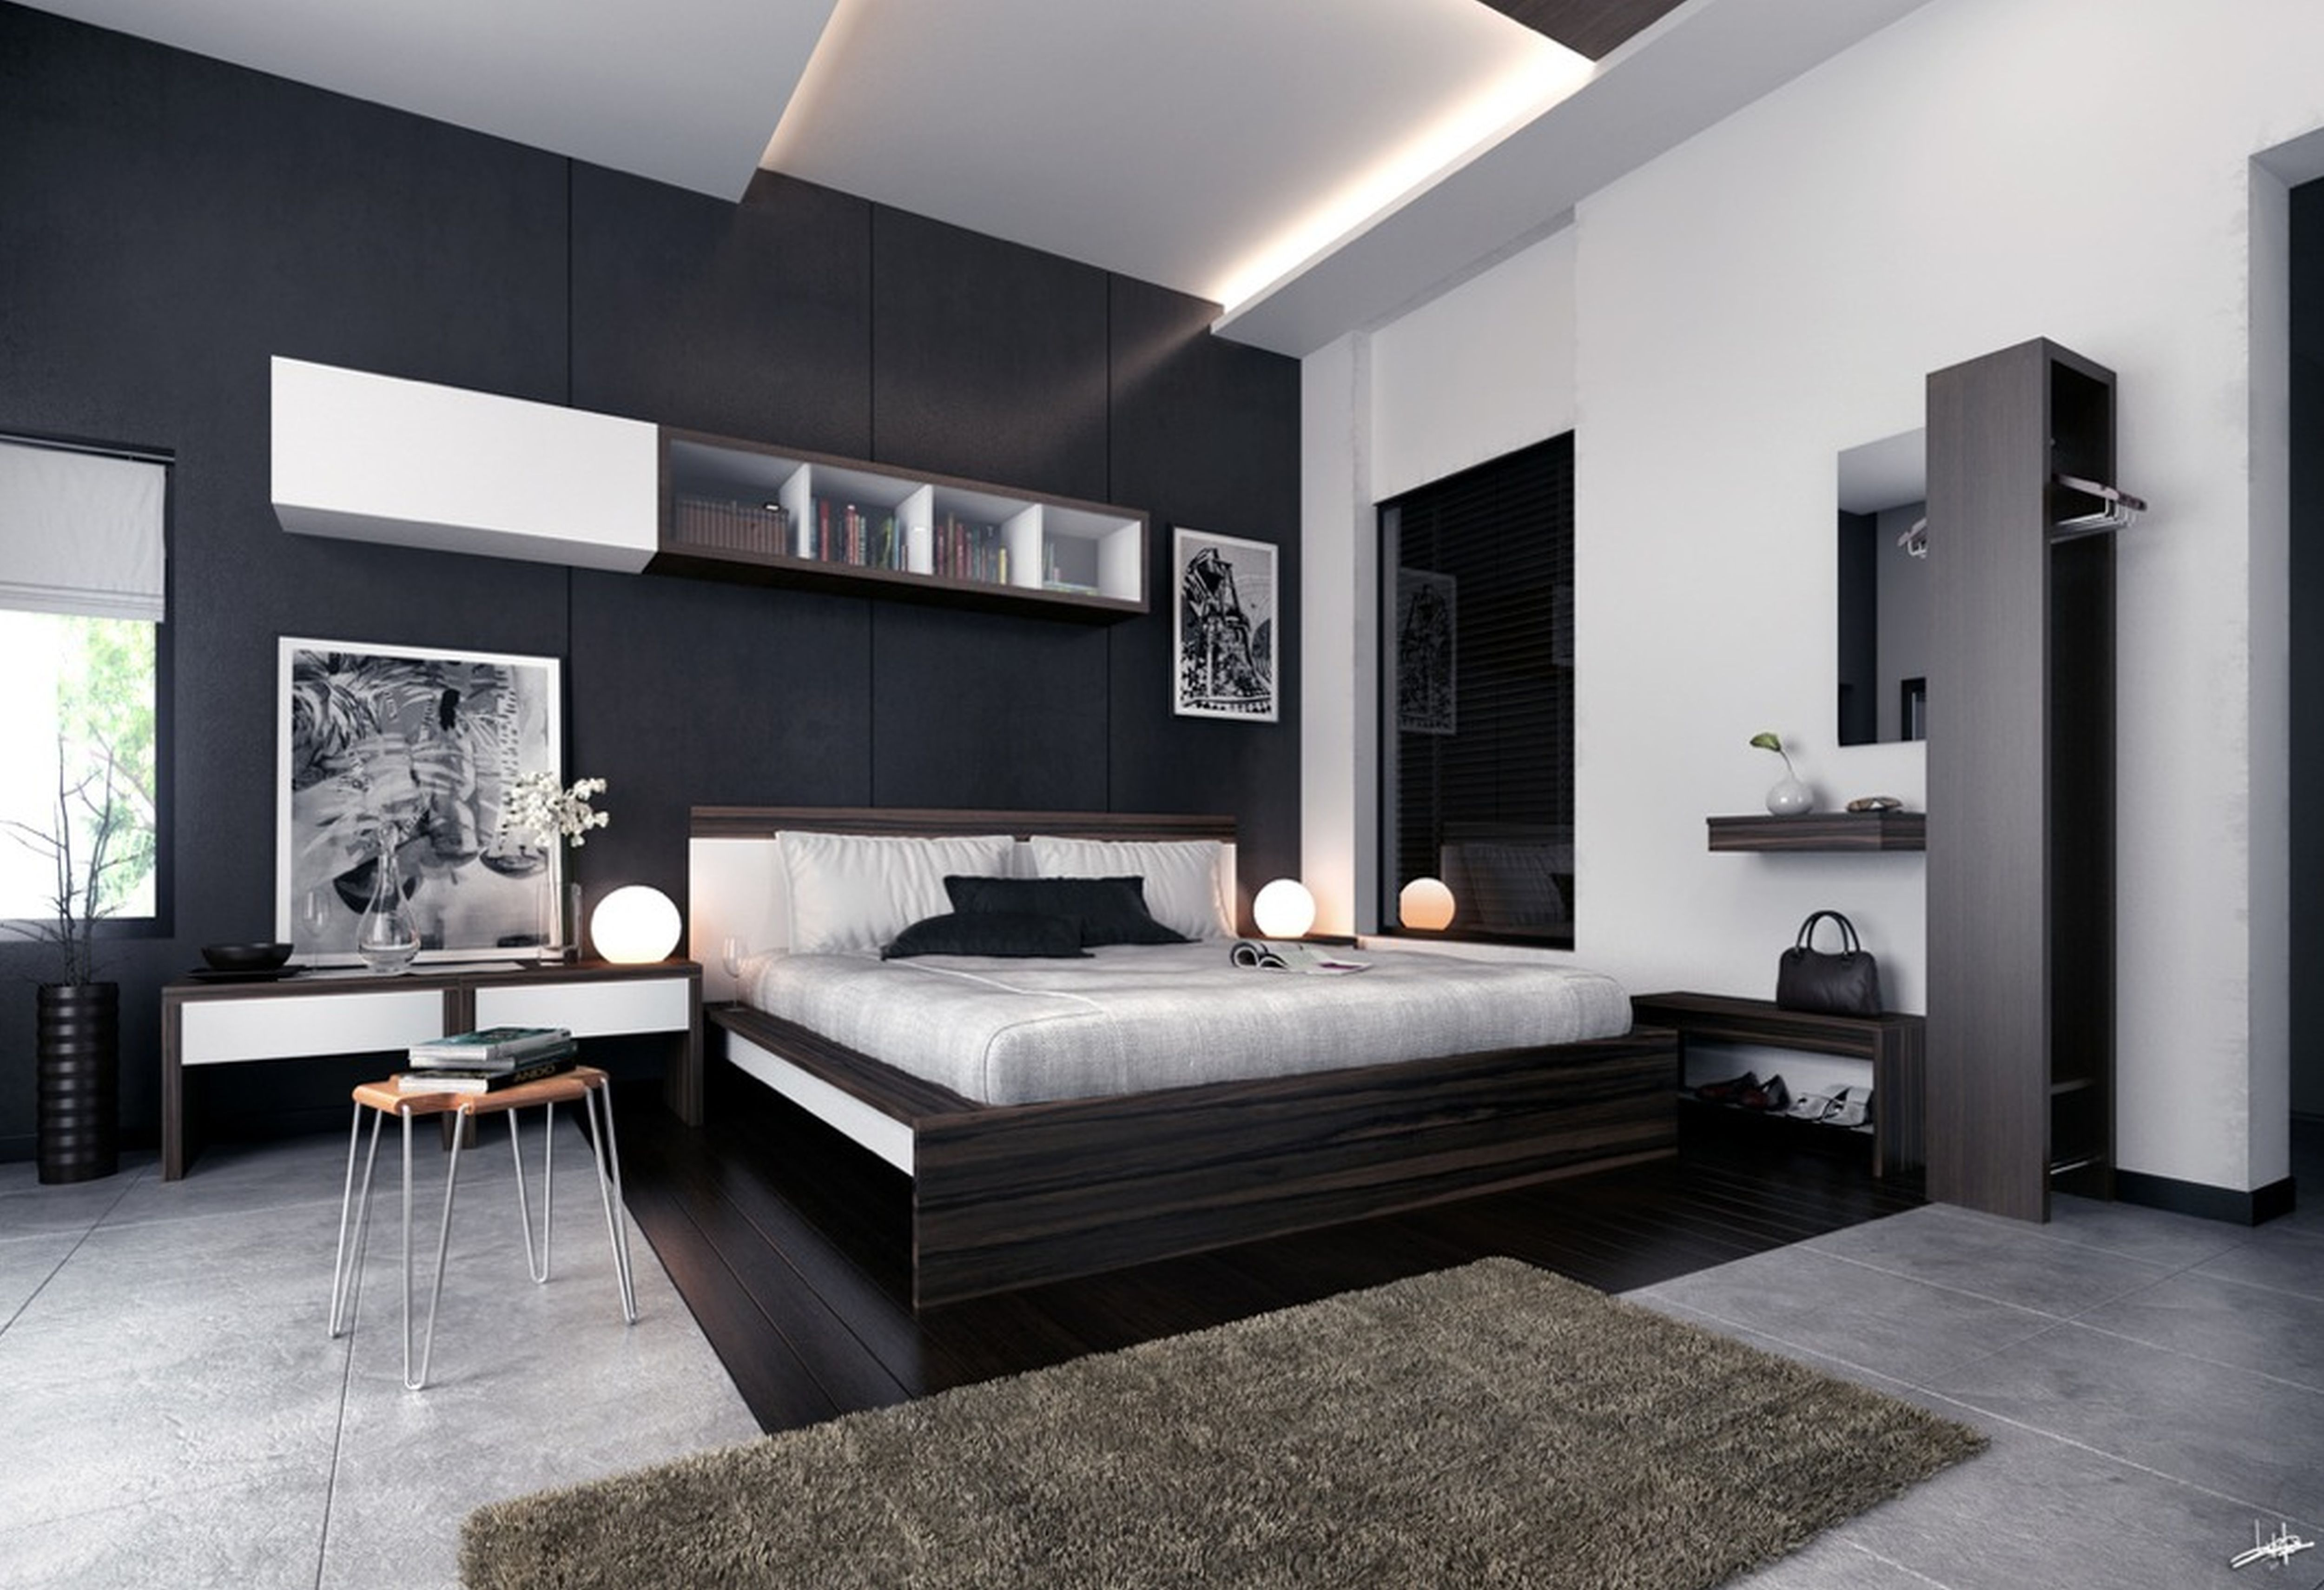 Bed Room Ideas With Black And White